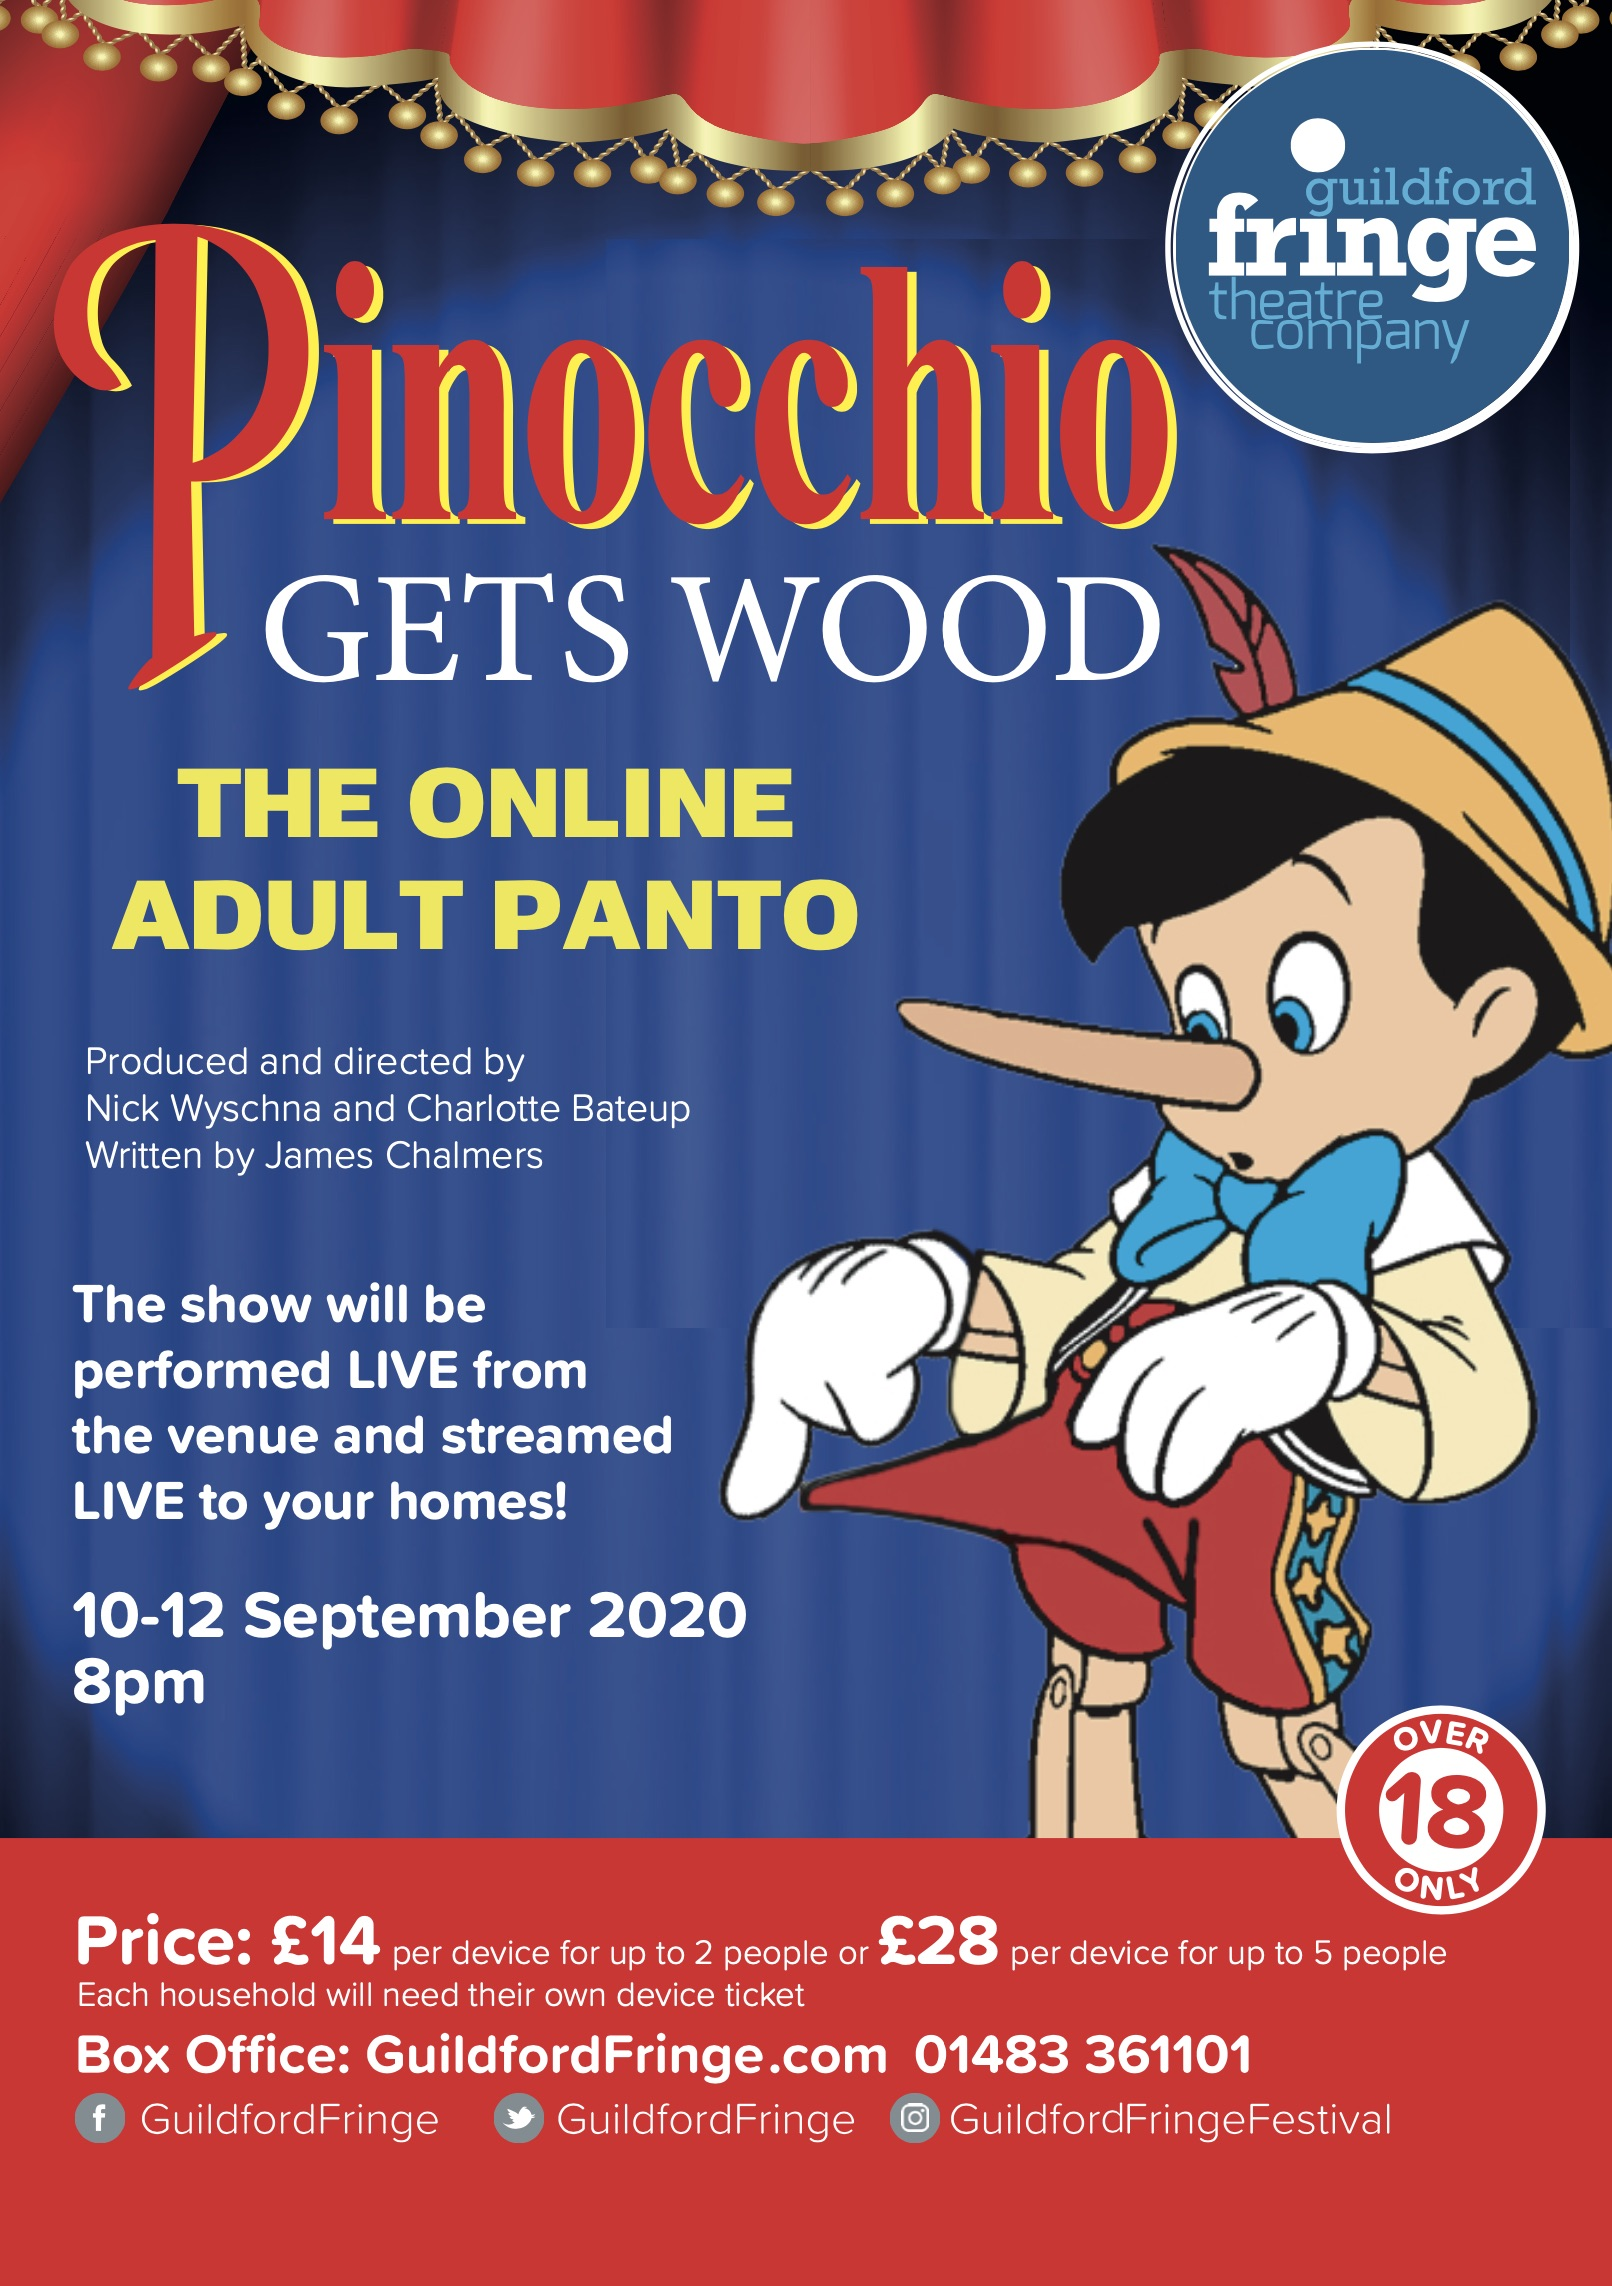 Pinocchio Gets Wood Online Adult Panto Guildford Fringe